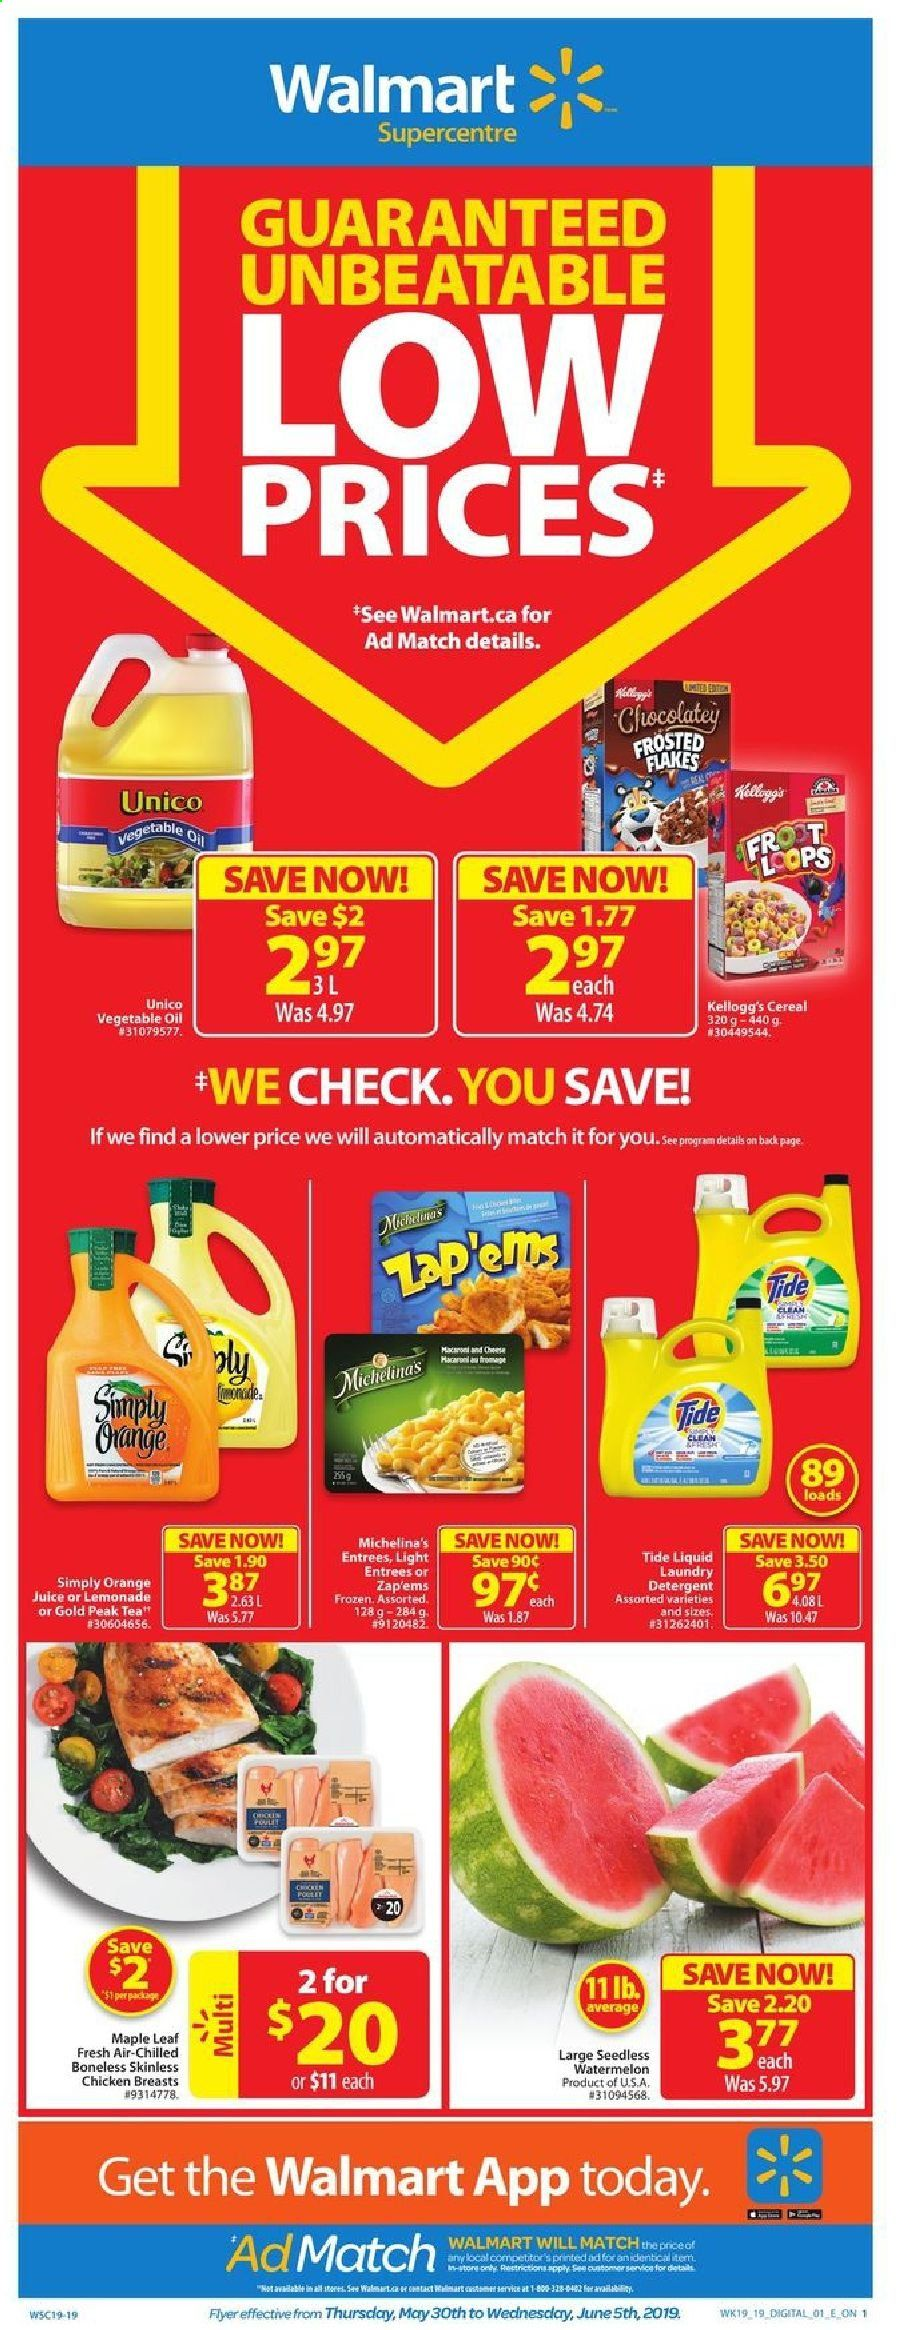 Walmart Flyer  - May 30, 2019 - June 05, 2019. Page 1.